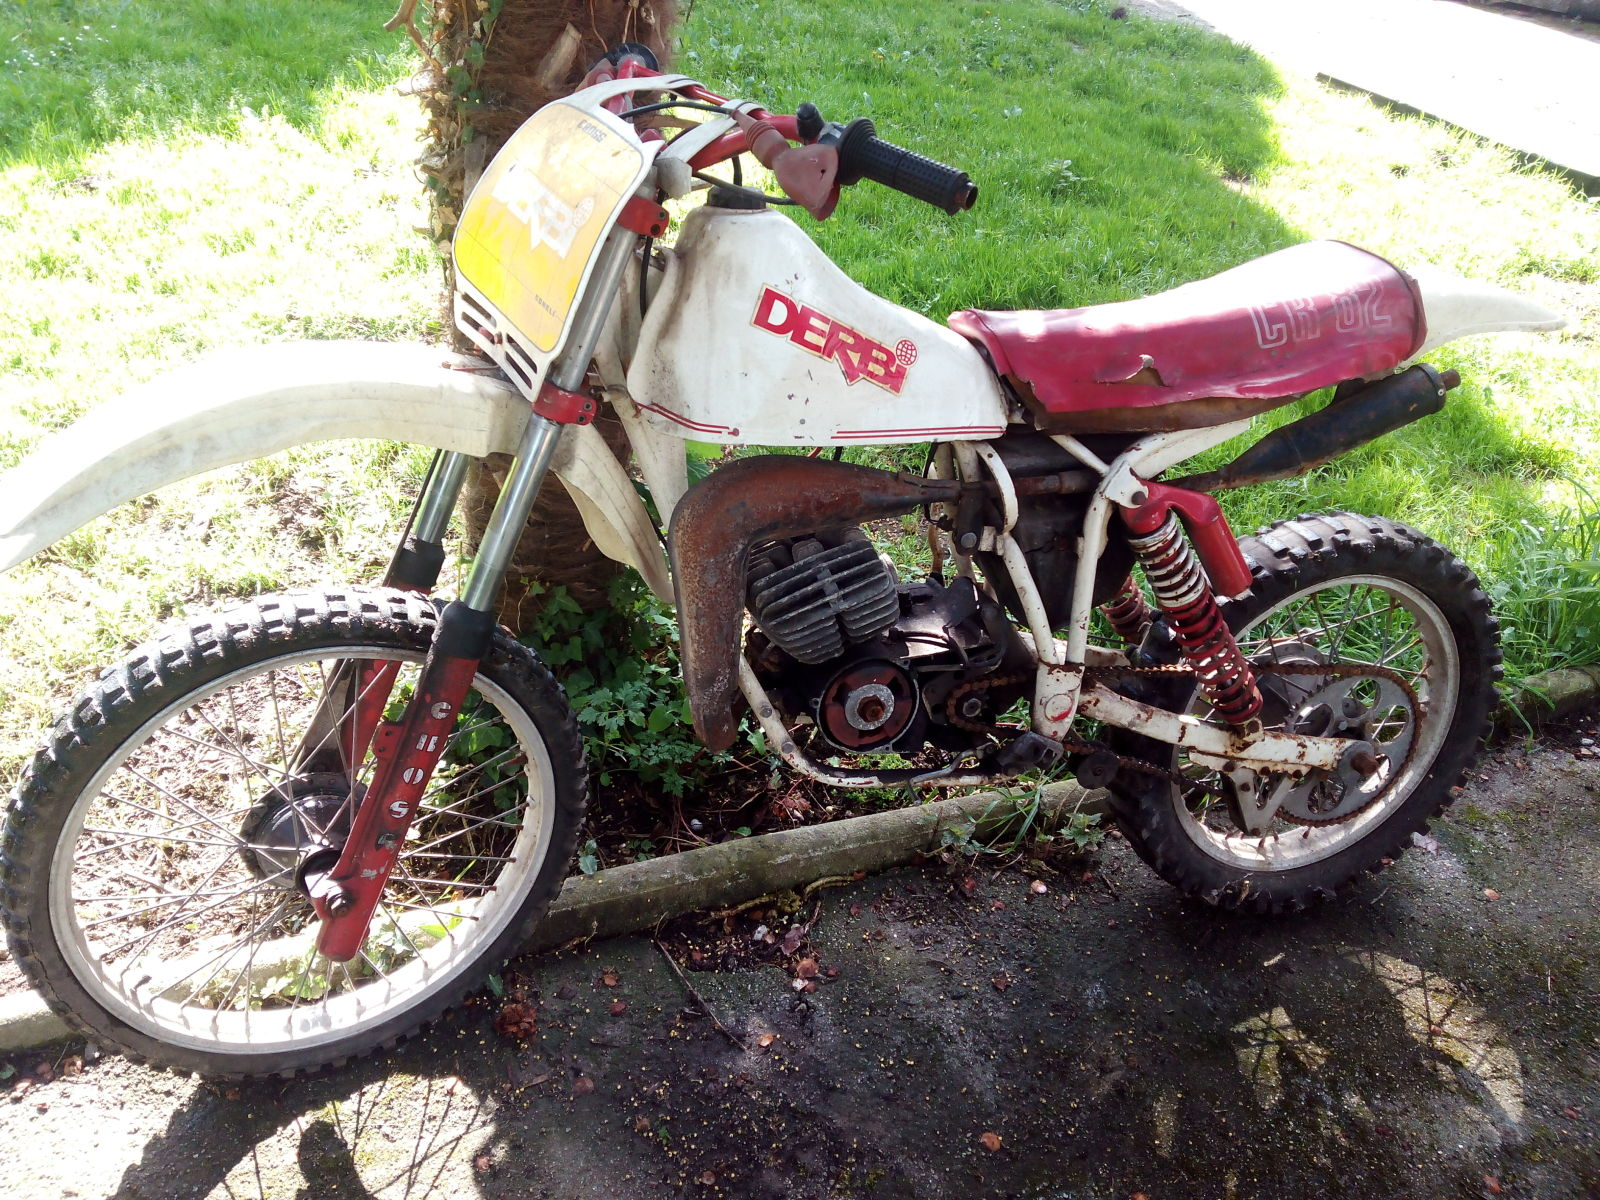 Derbi CR 82 - Me Ha Costado Un Año 2z4mr9x